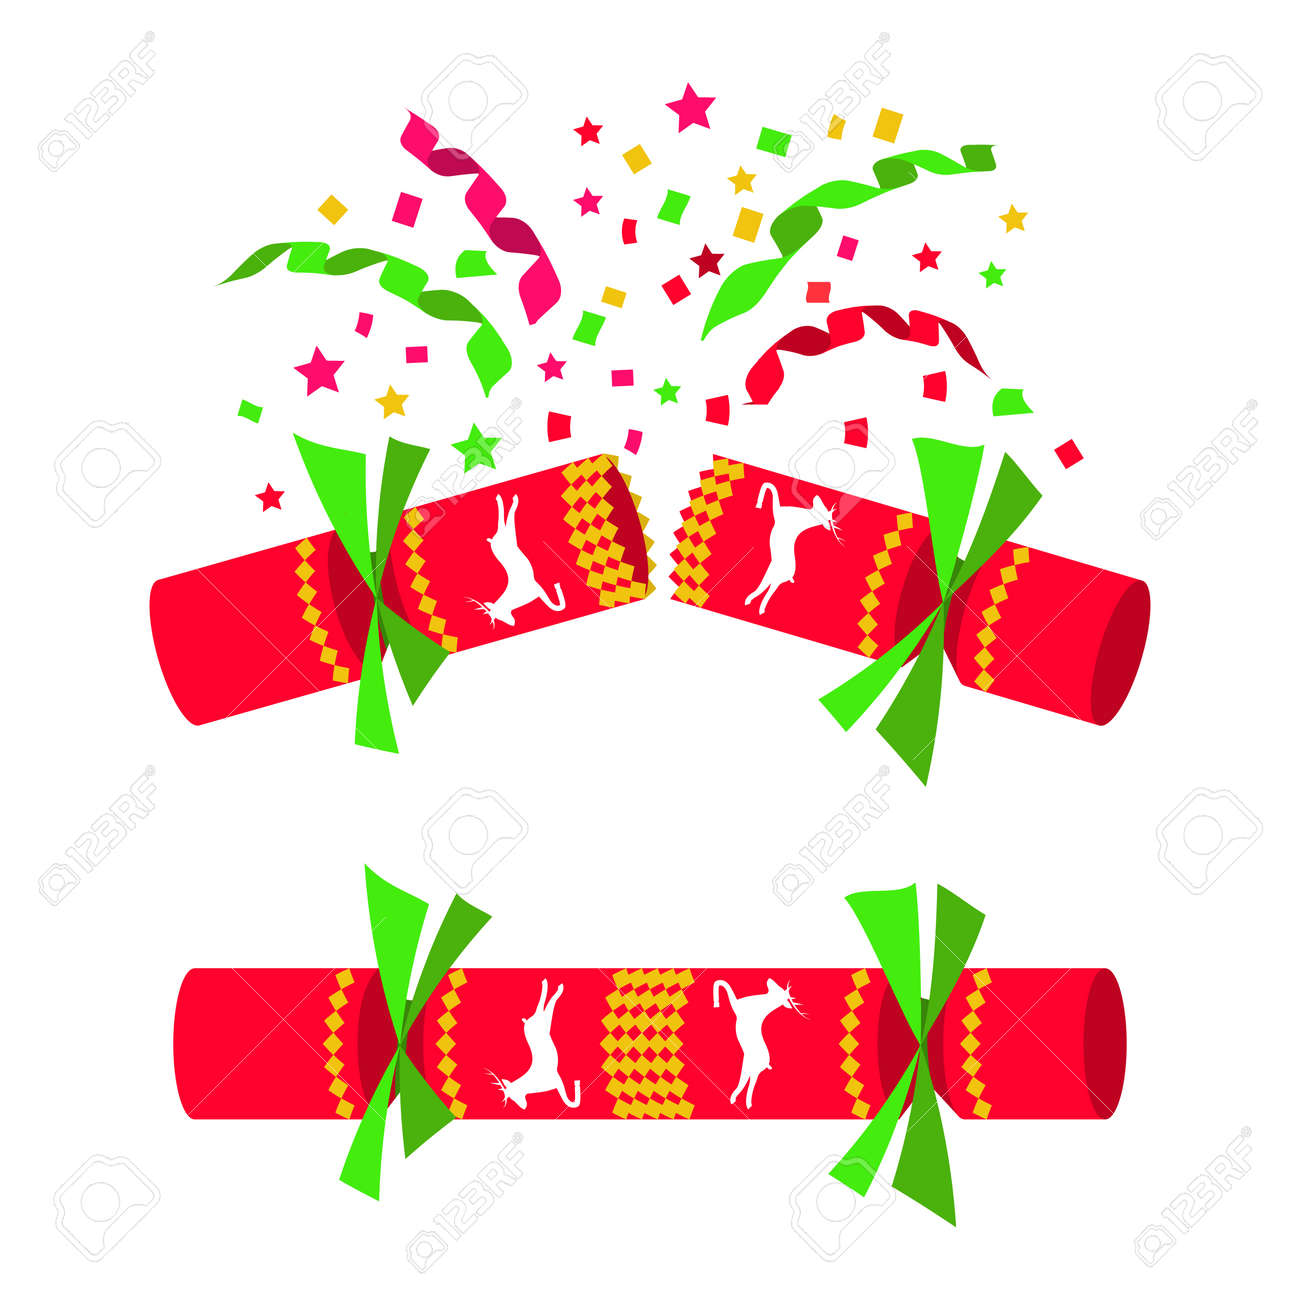 Christmas Cracker Vector.Christmas Cracker Isolated In White Background